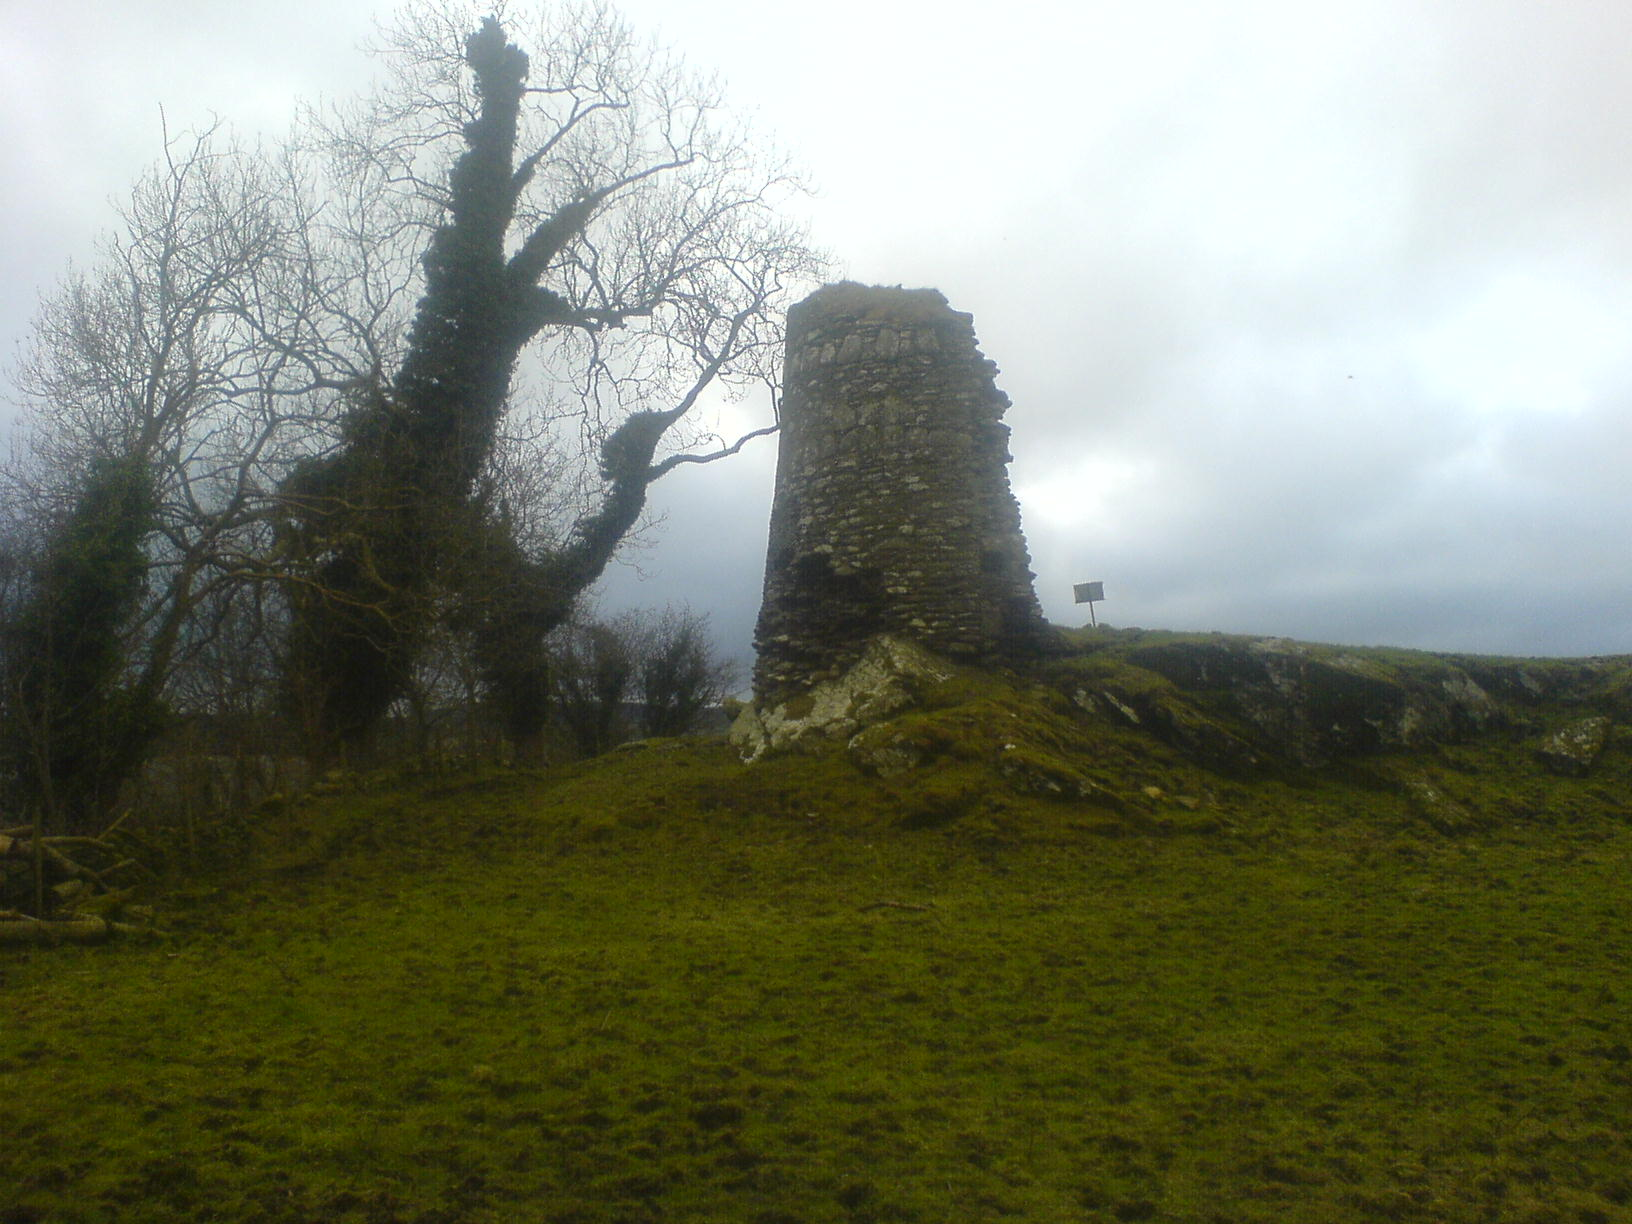 The remains of O'Doherty Castle